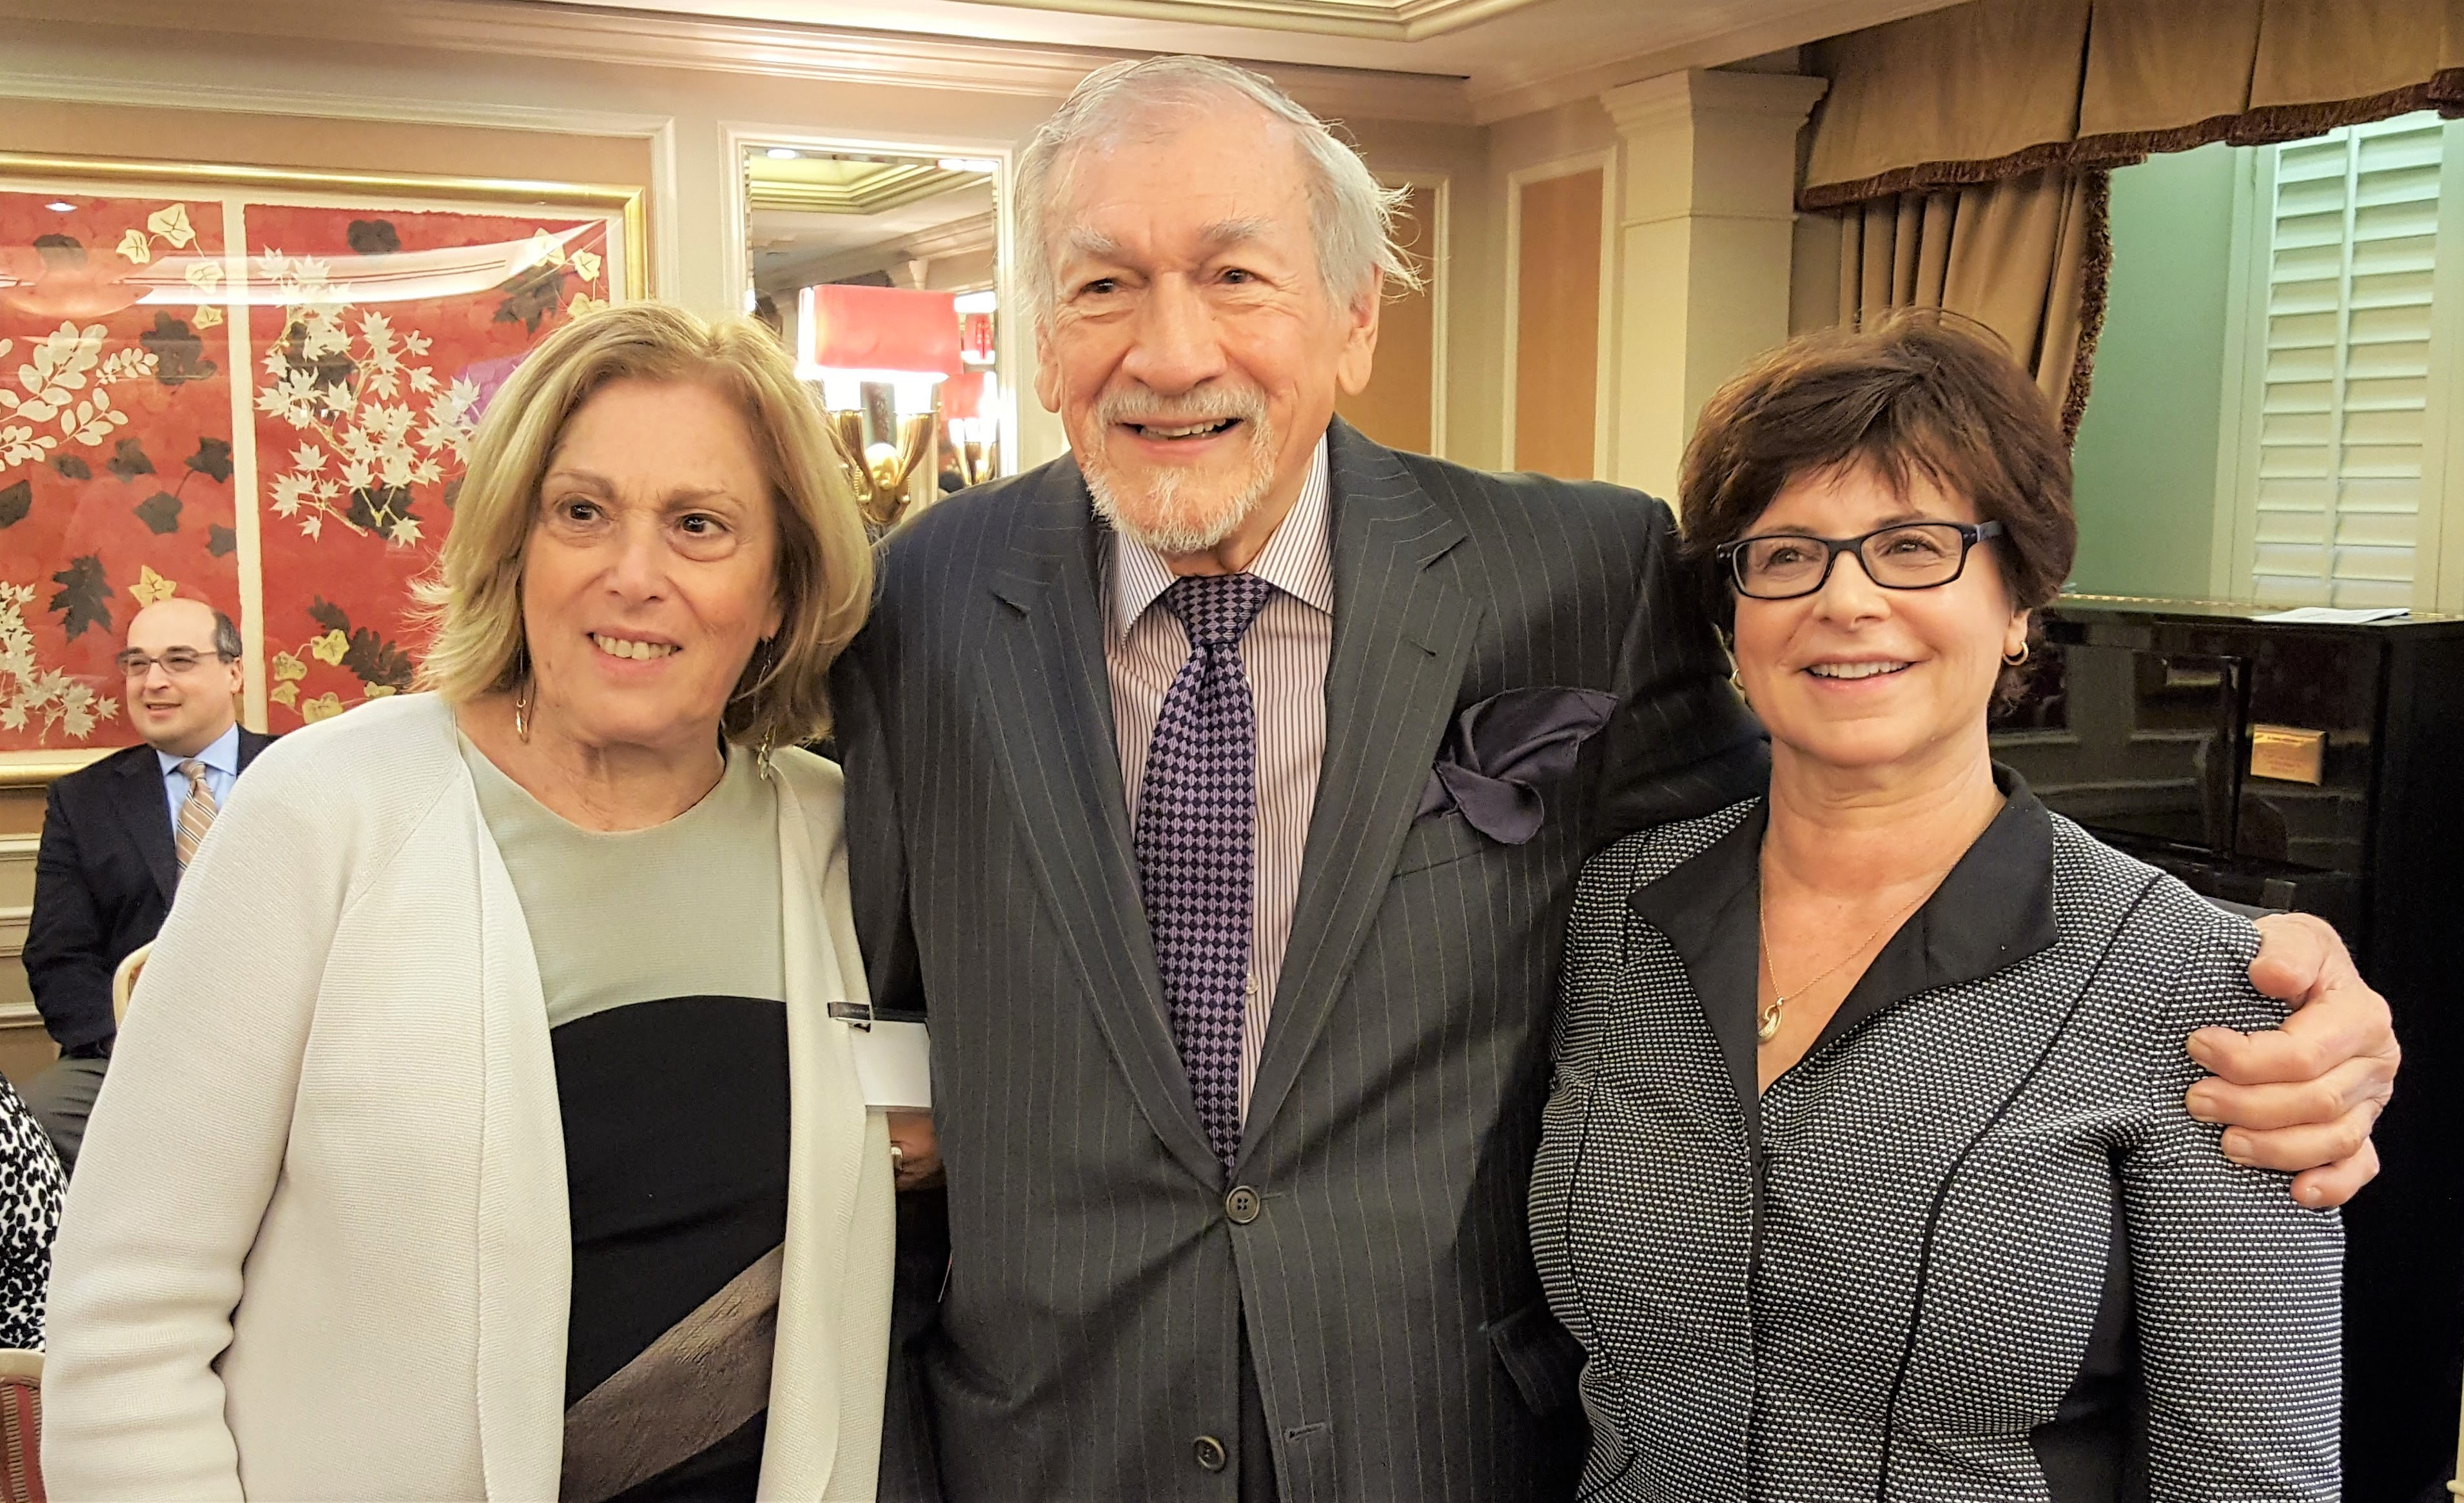 Former Impartial Members of the Board of Collective Bargaining - Carol A. Wittenberg (2002-2015), George Nicolau (1987-2015), Marlene A. Gold (2000-2014